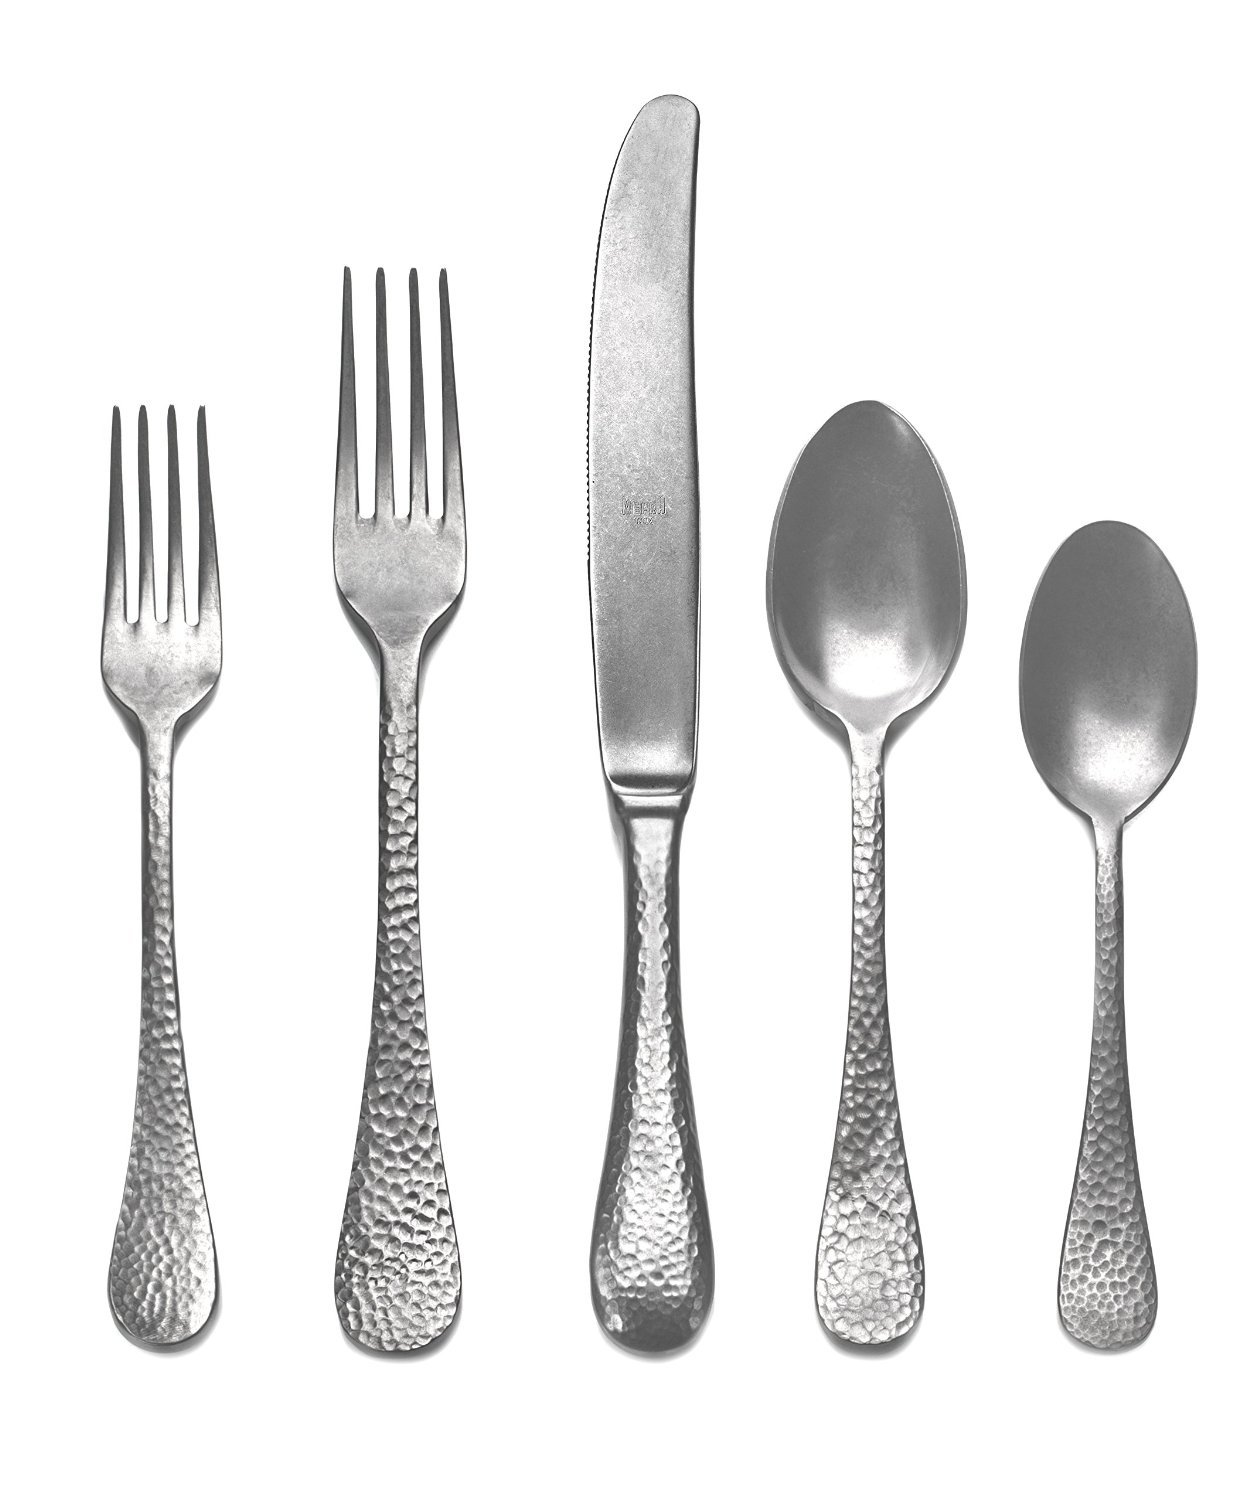 Mepra Epoque 5 Piece Place Setting, Pewter - Enhance your dining experience with this beautiful Italian flatware!  Made in Italy with the highest quality of 18/10 stainless steel 40 mm thick; Durable and ergonic Knives have double serration for a durable sharpness - kitchen-tabletop, kitchen-dining-room, flatware - 71Jwm2icbzL -